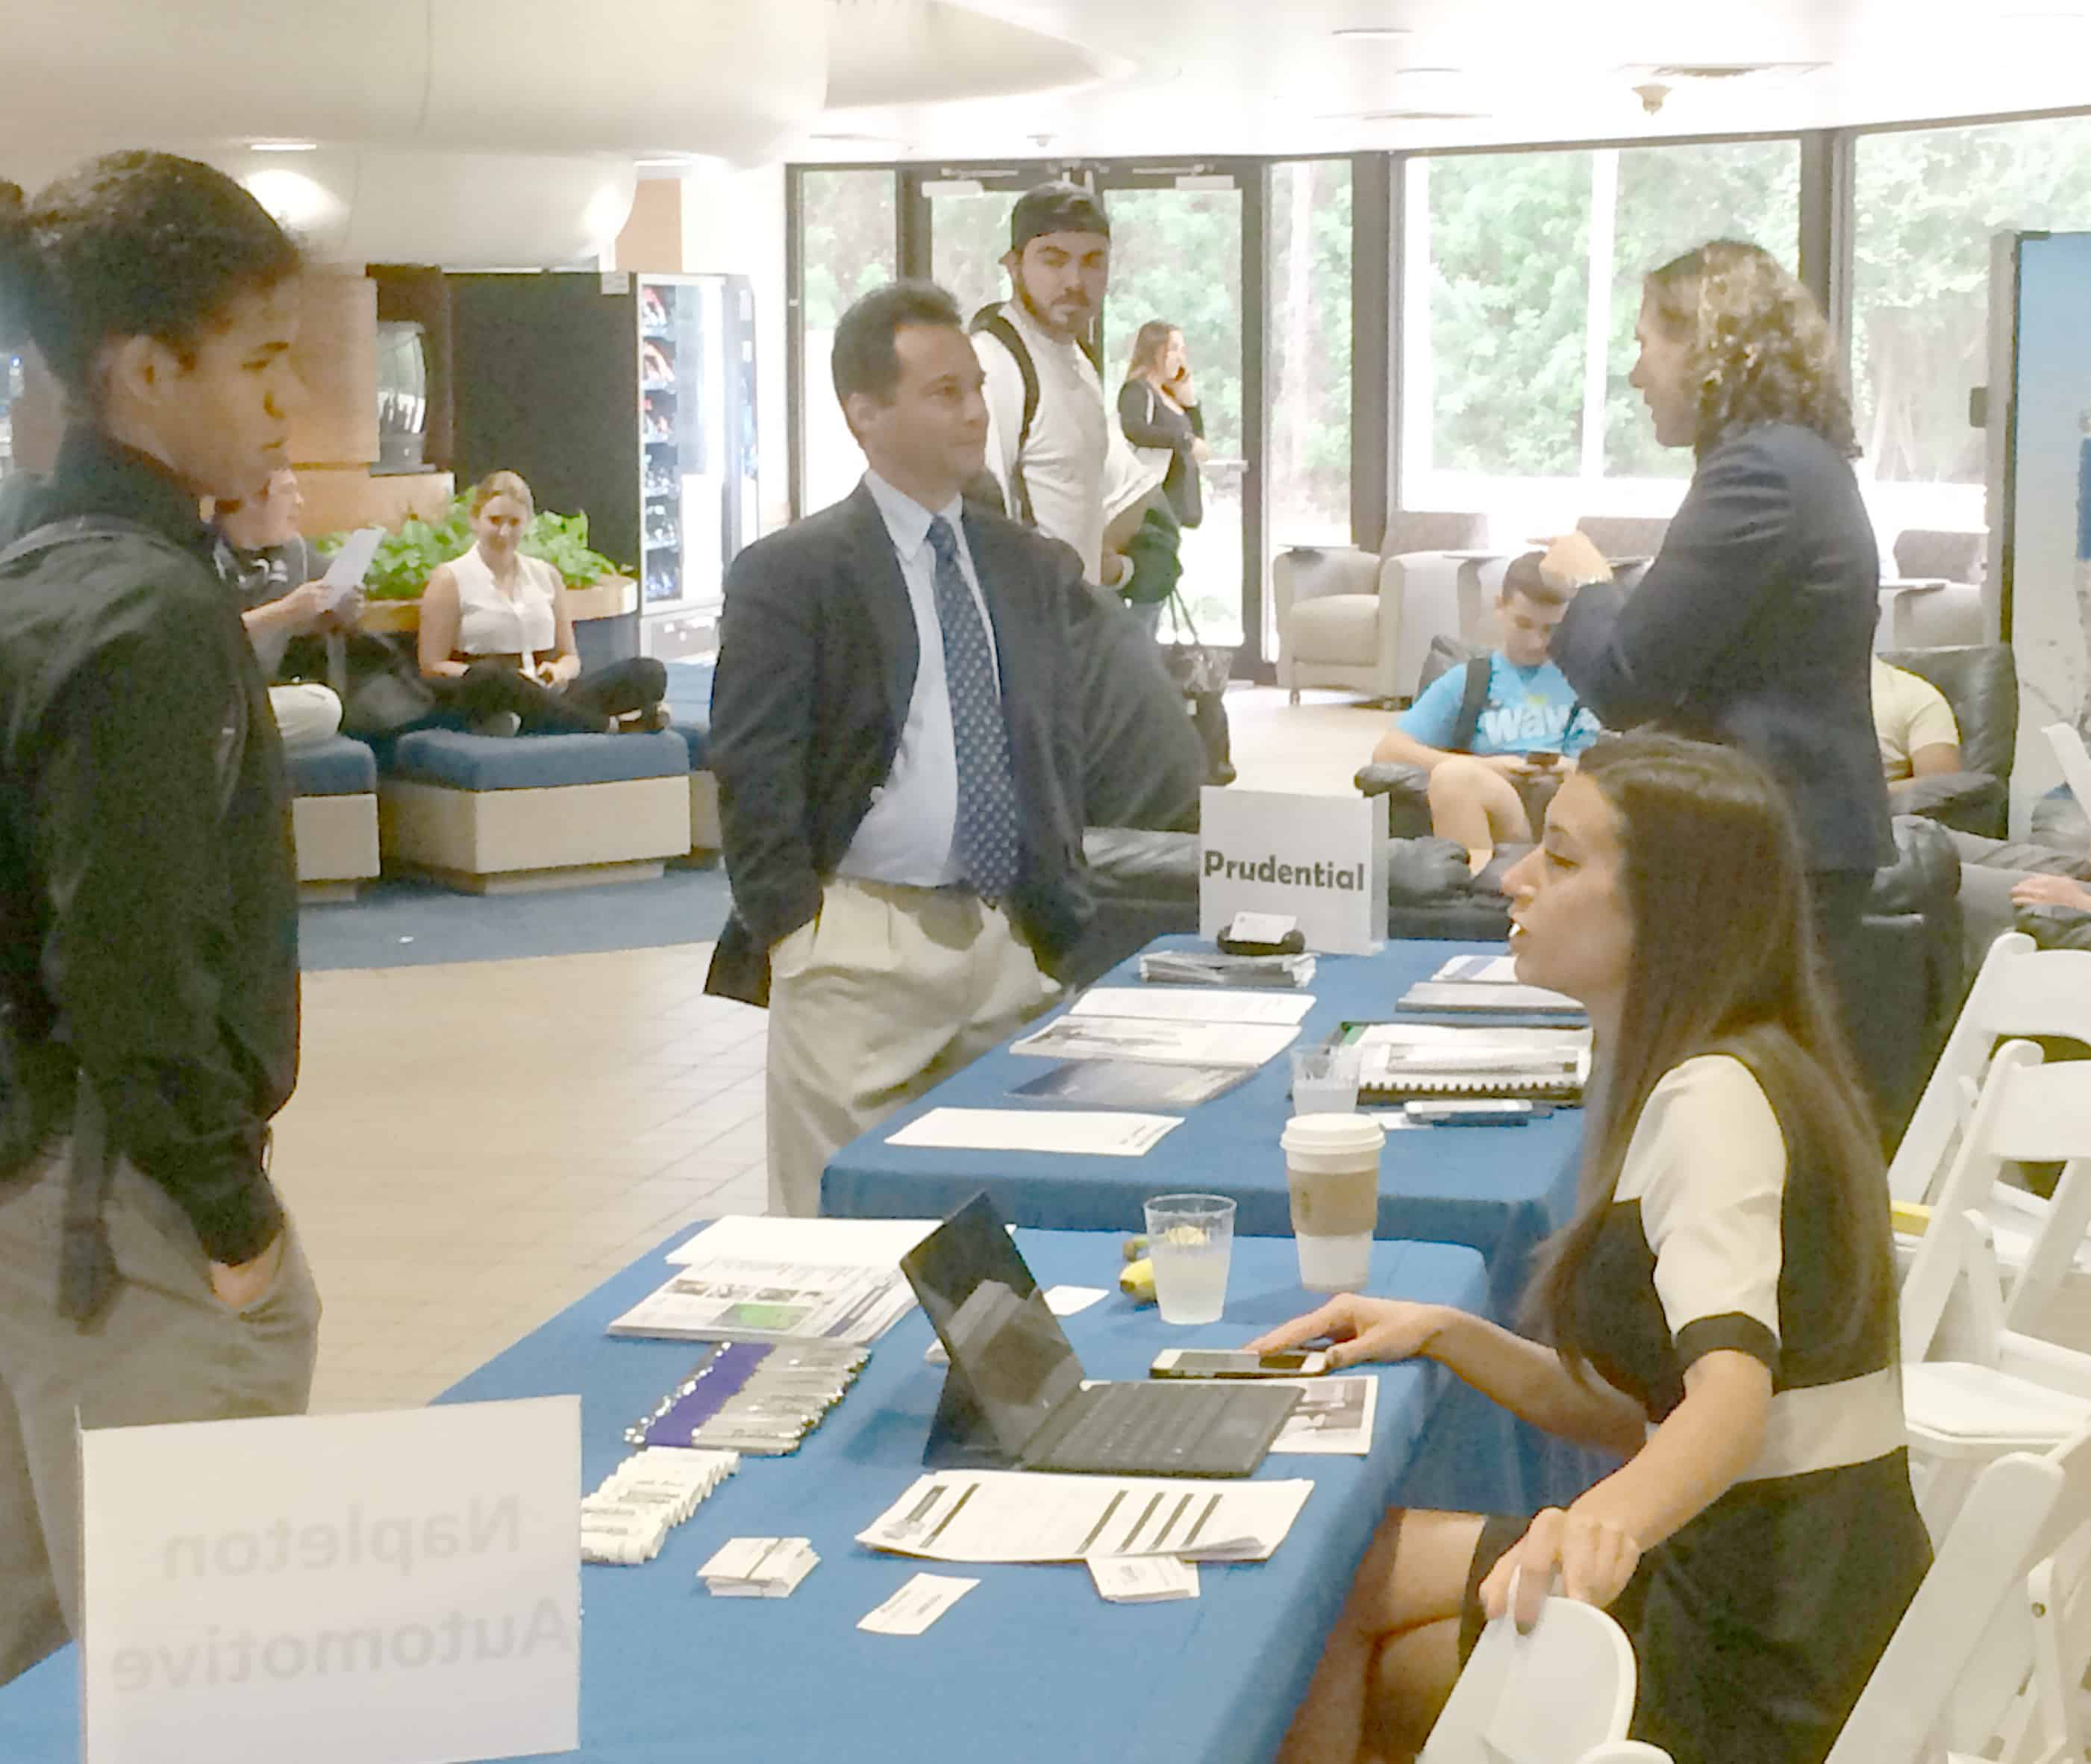 Students at the Flagship Campus Research Employment Opportunities, Network at Career Fair